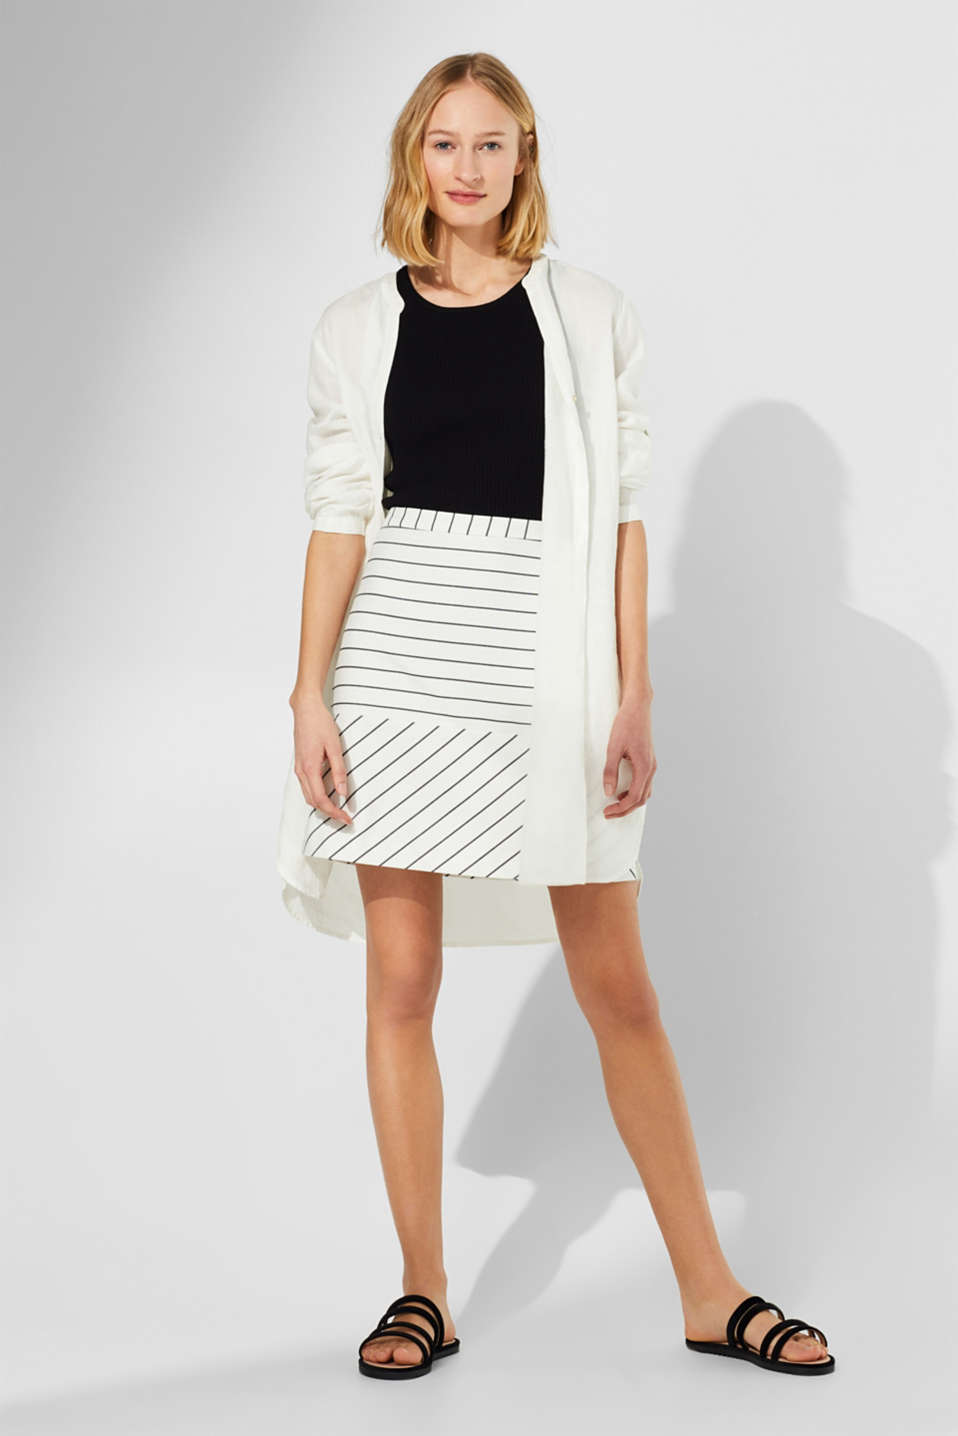 Woven stretch skirt with two kinds of stripes